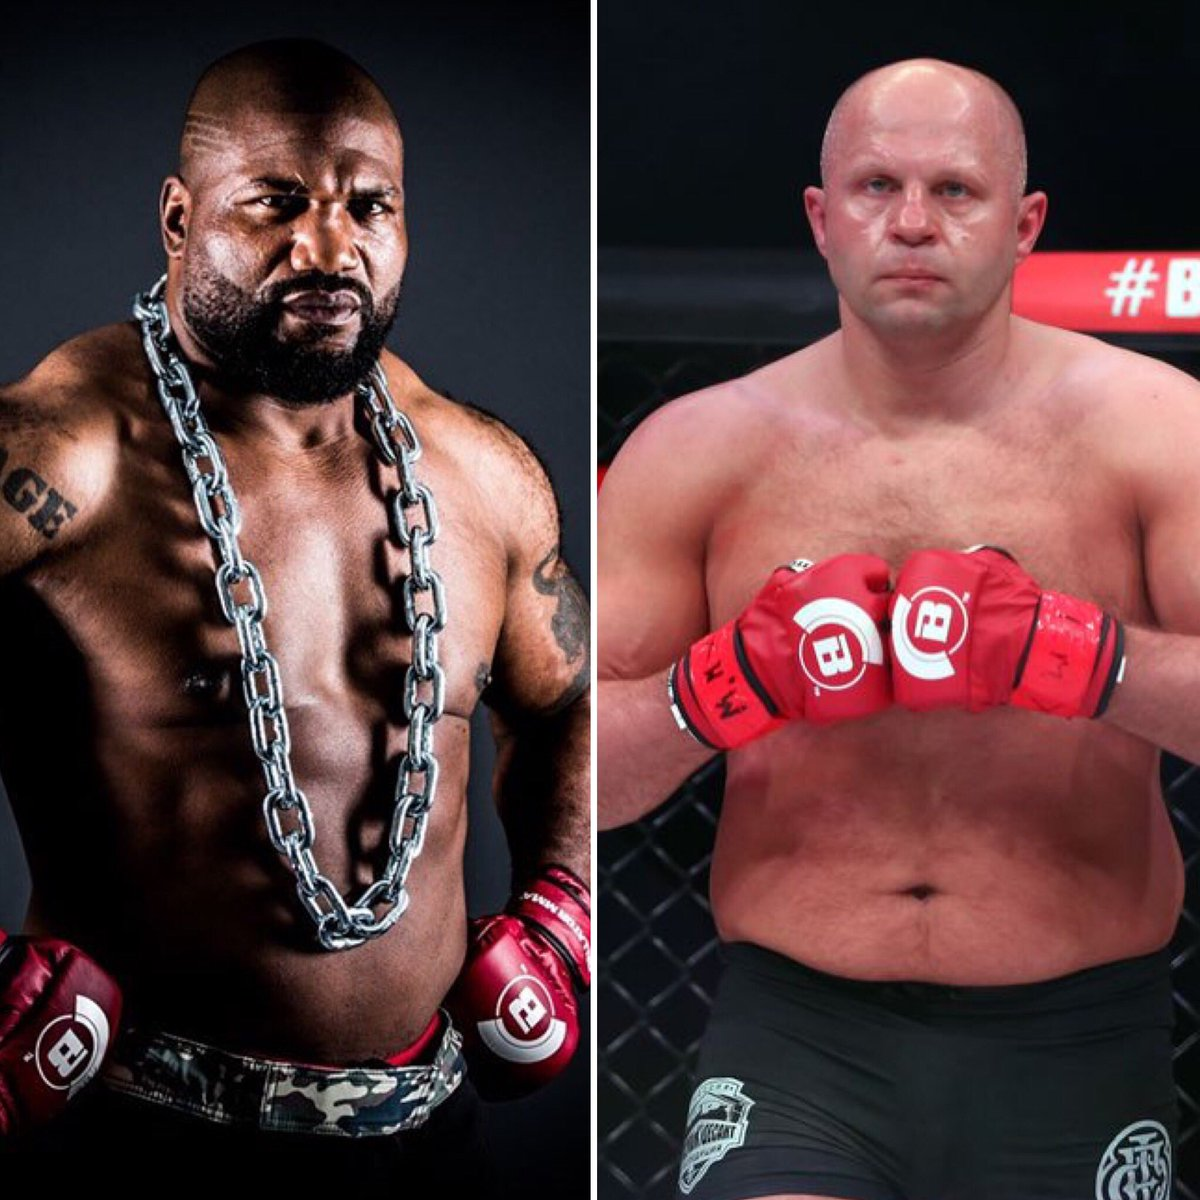 Fedor Emelianenko not worried about Chael Sonnen talk ...